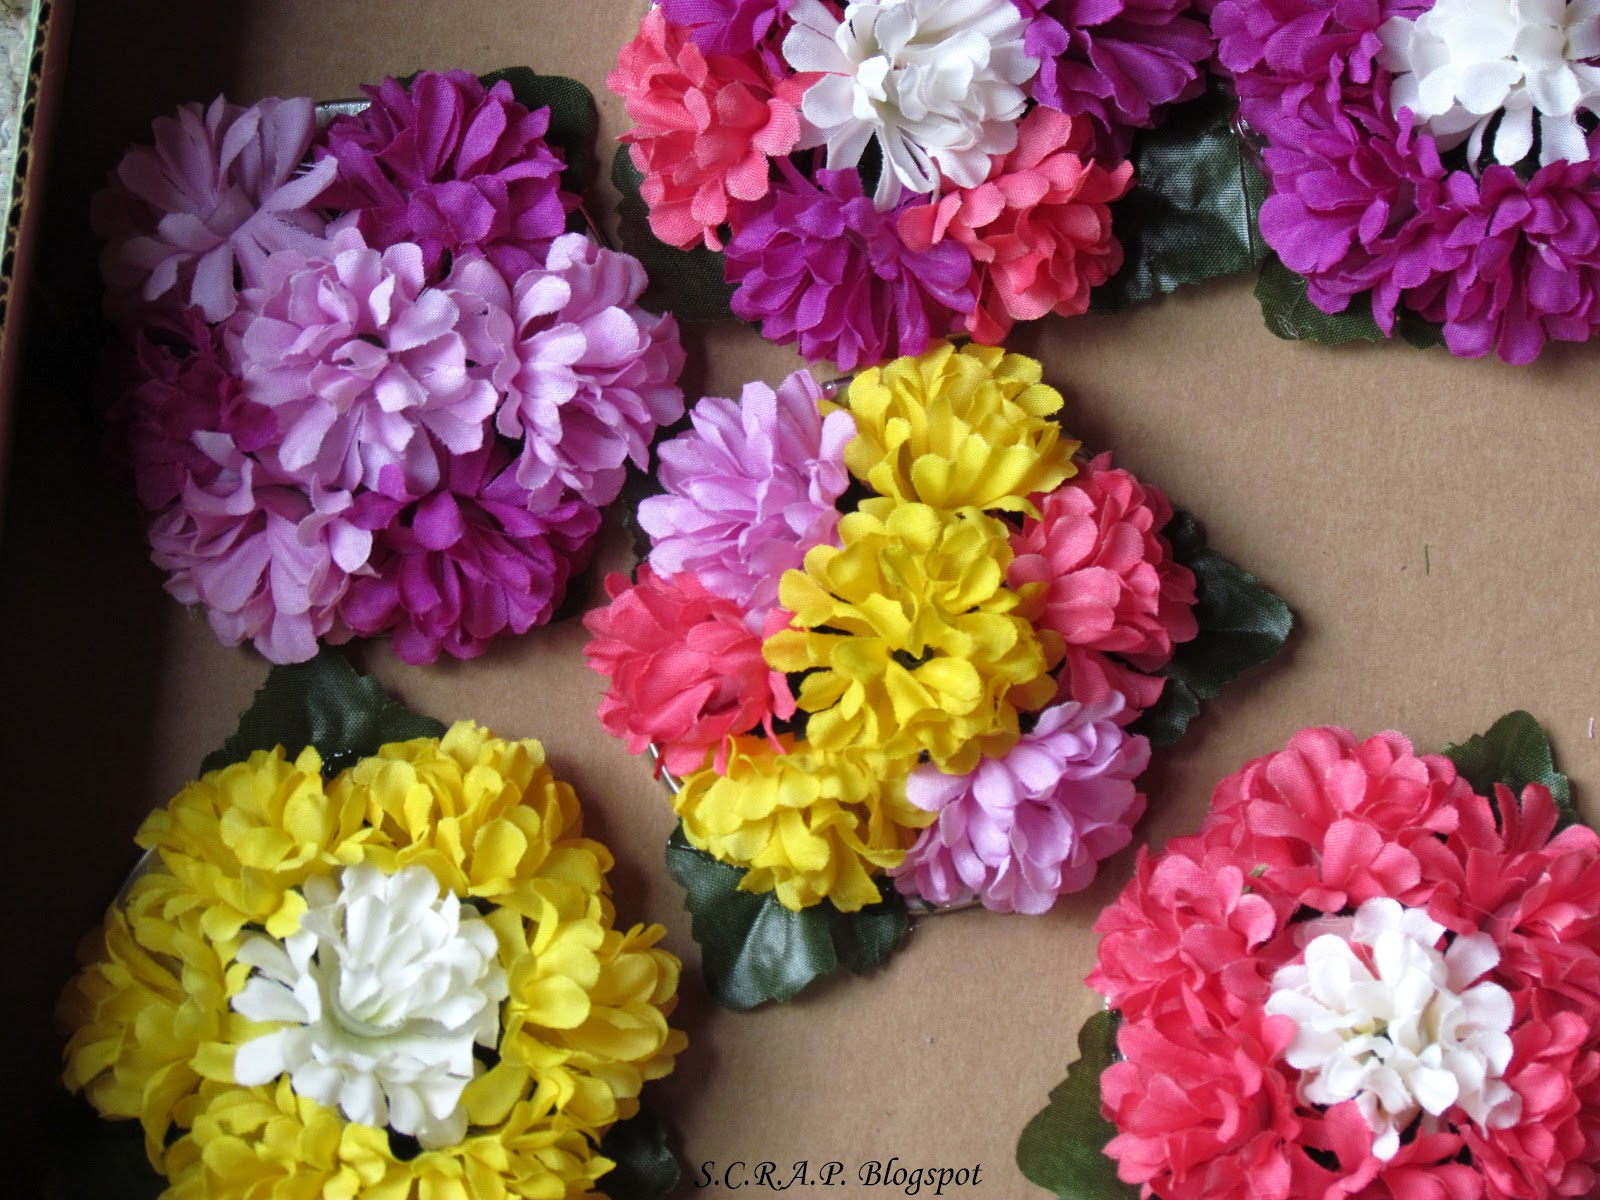 S c r a p scraps creatively reused and recycled art for Recycled flower art